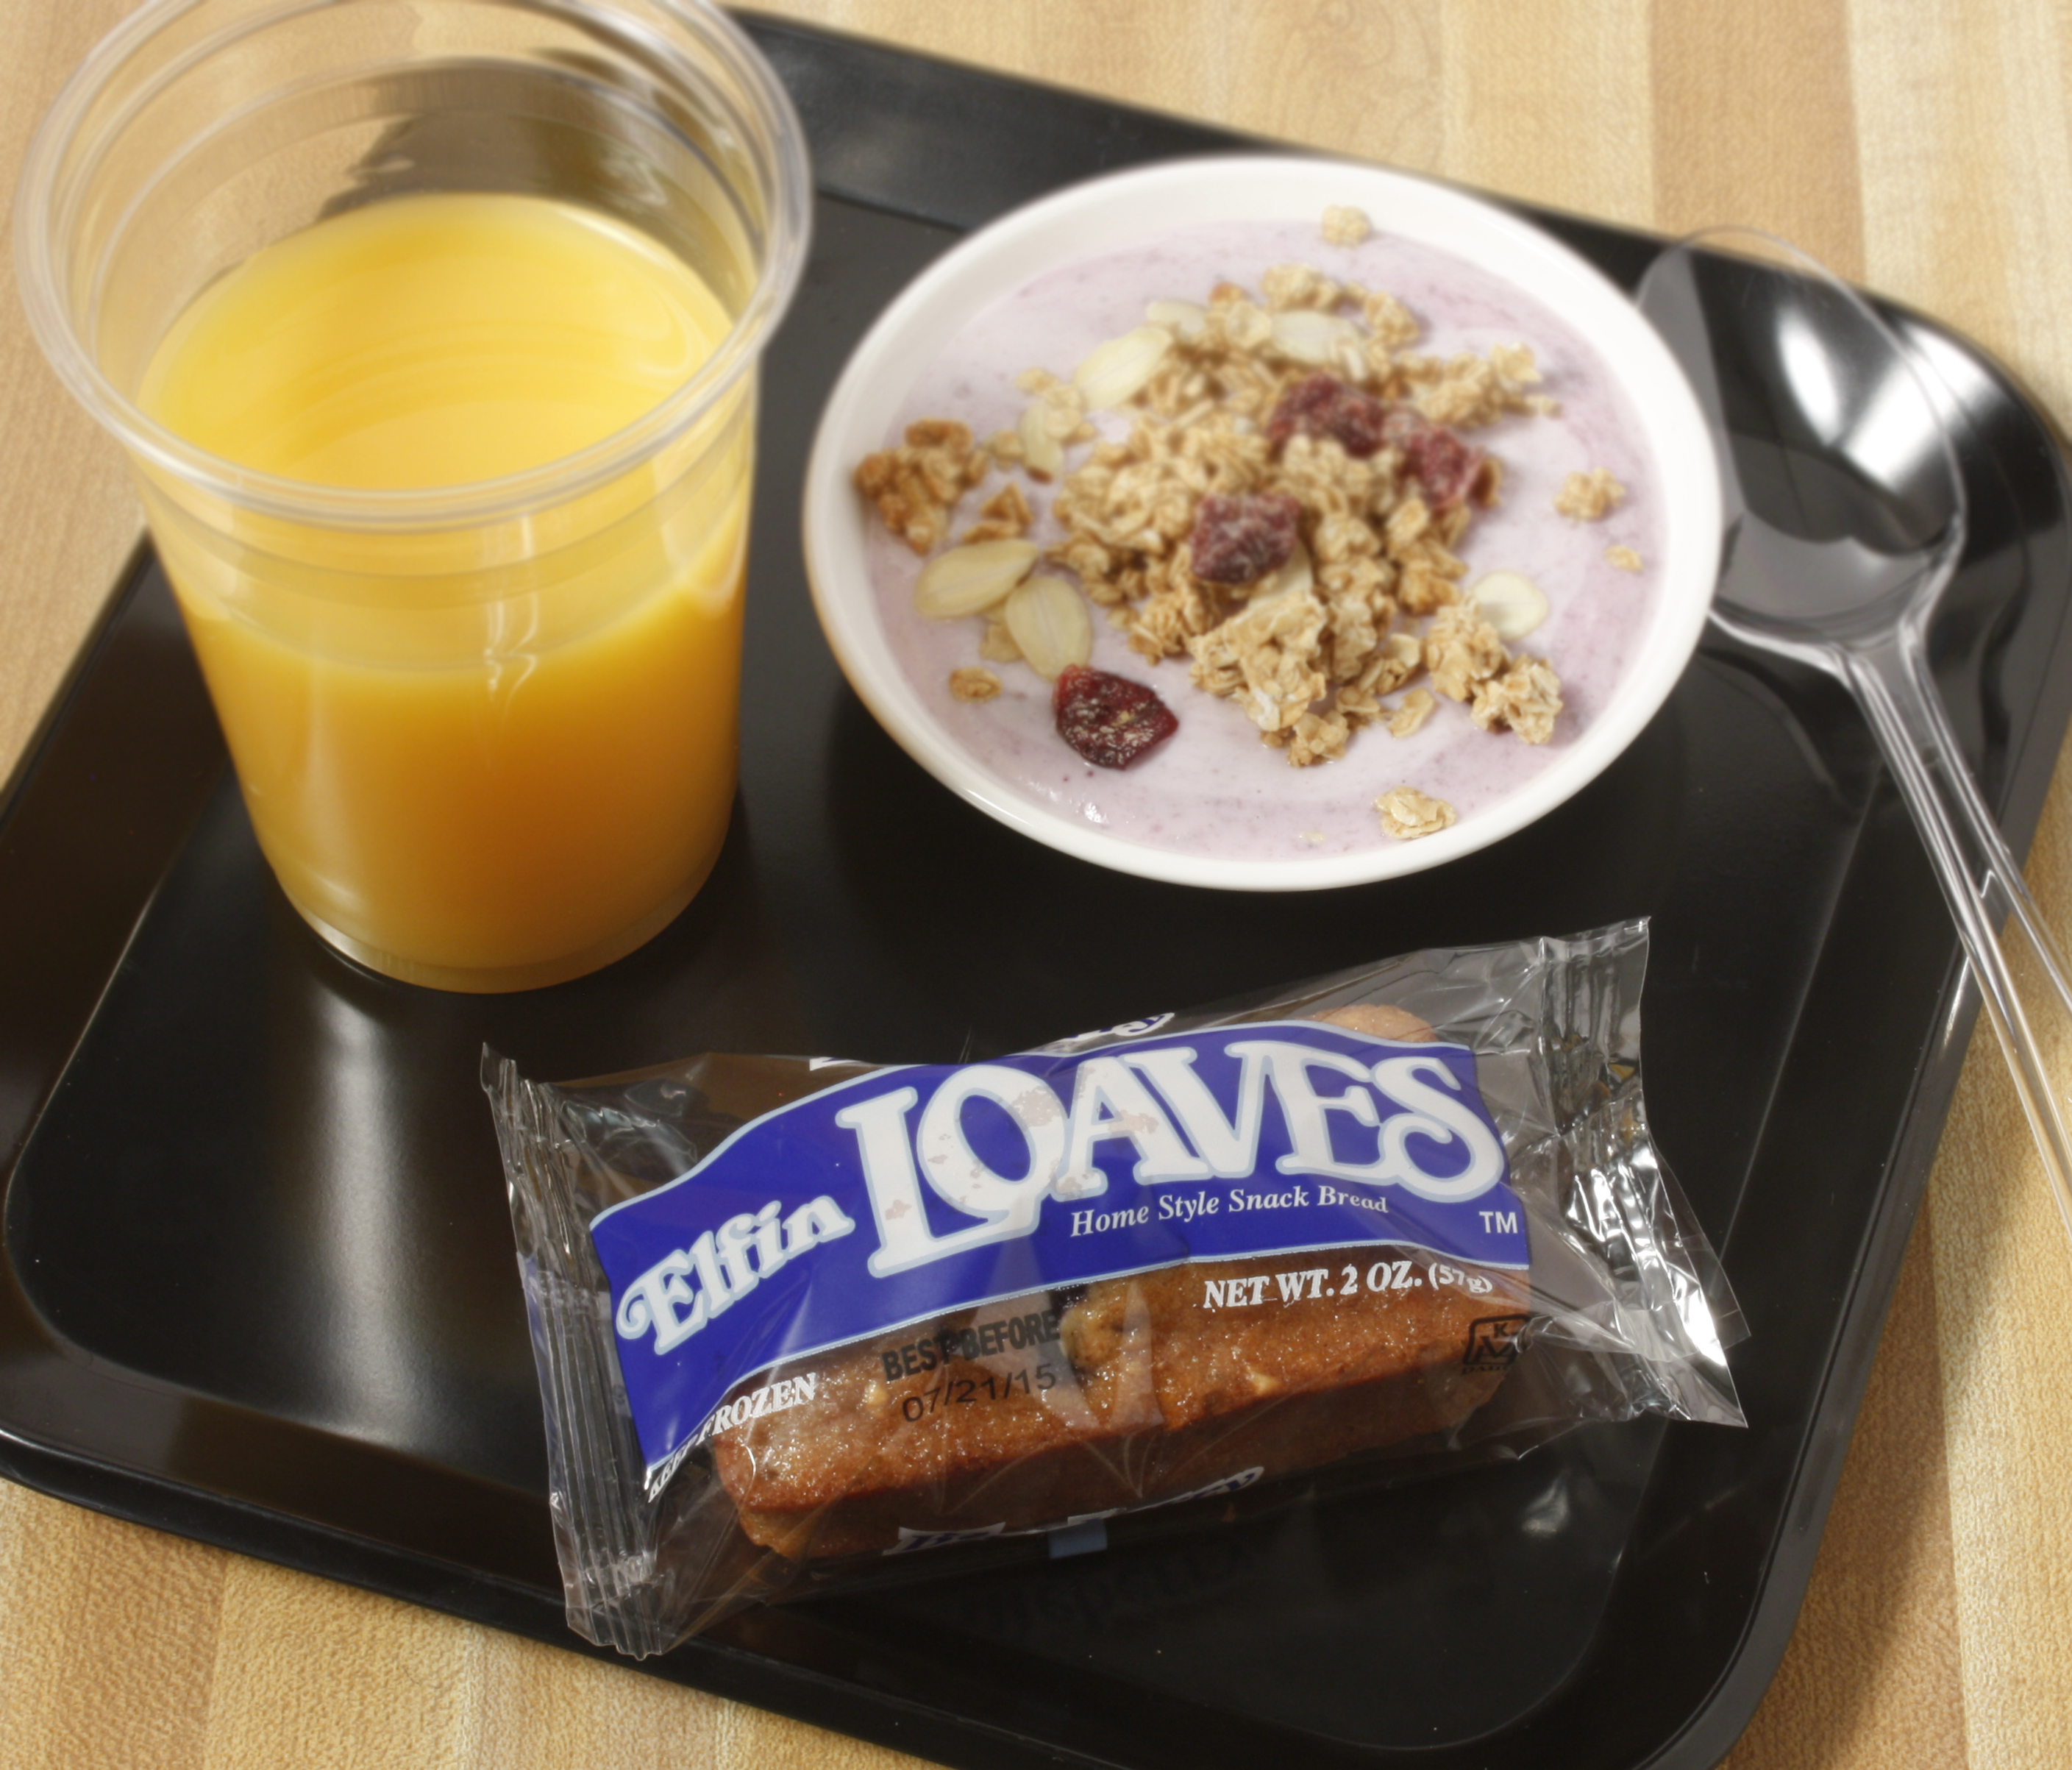 Plate of foodservice Whole Grain Blueberry Elfin Loaf with yogurt and Orange Juice in a school setting